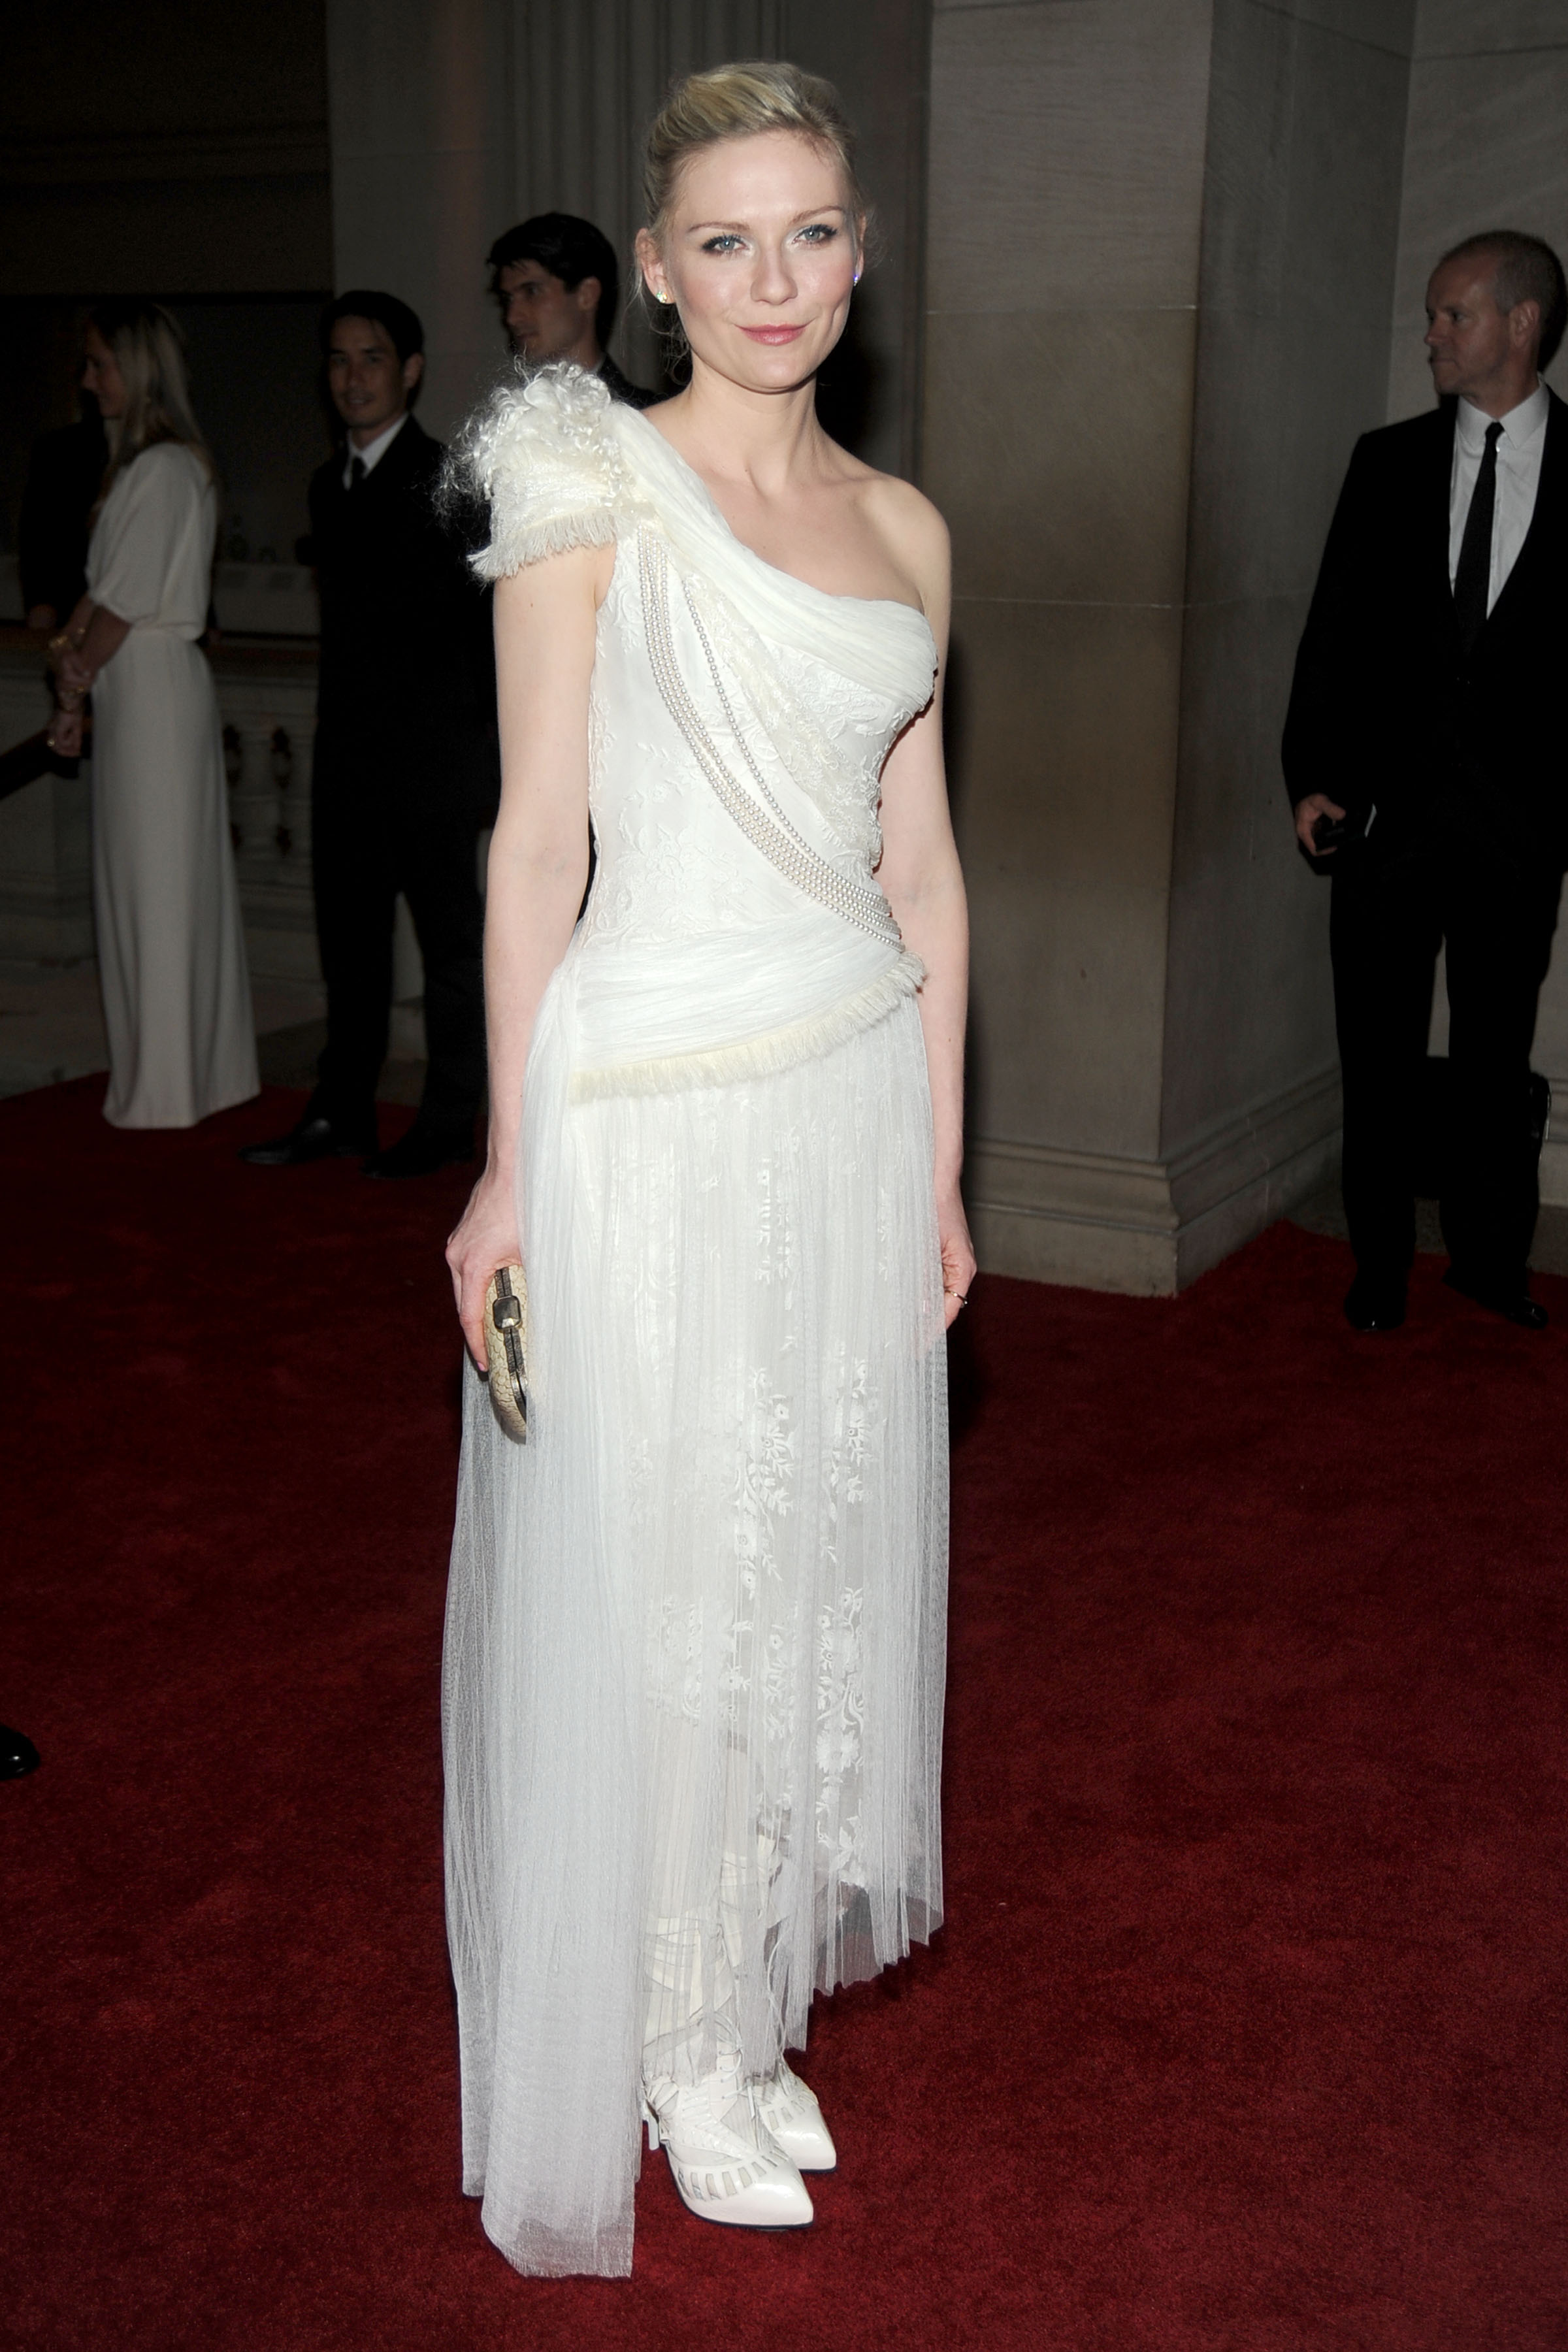 MET Ball 2010: Kirsten Dunst in Rodarte for Gap